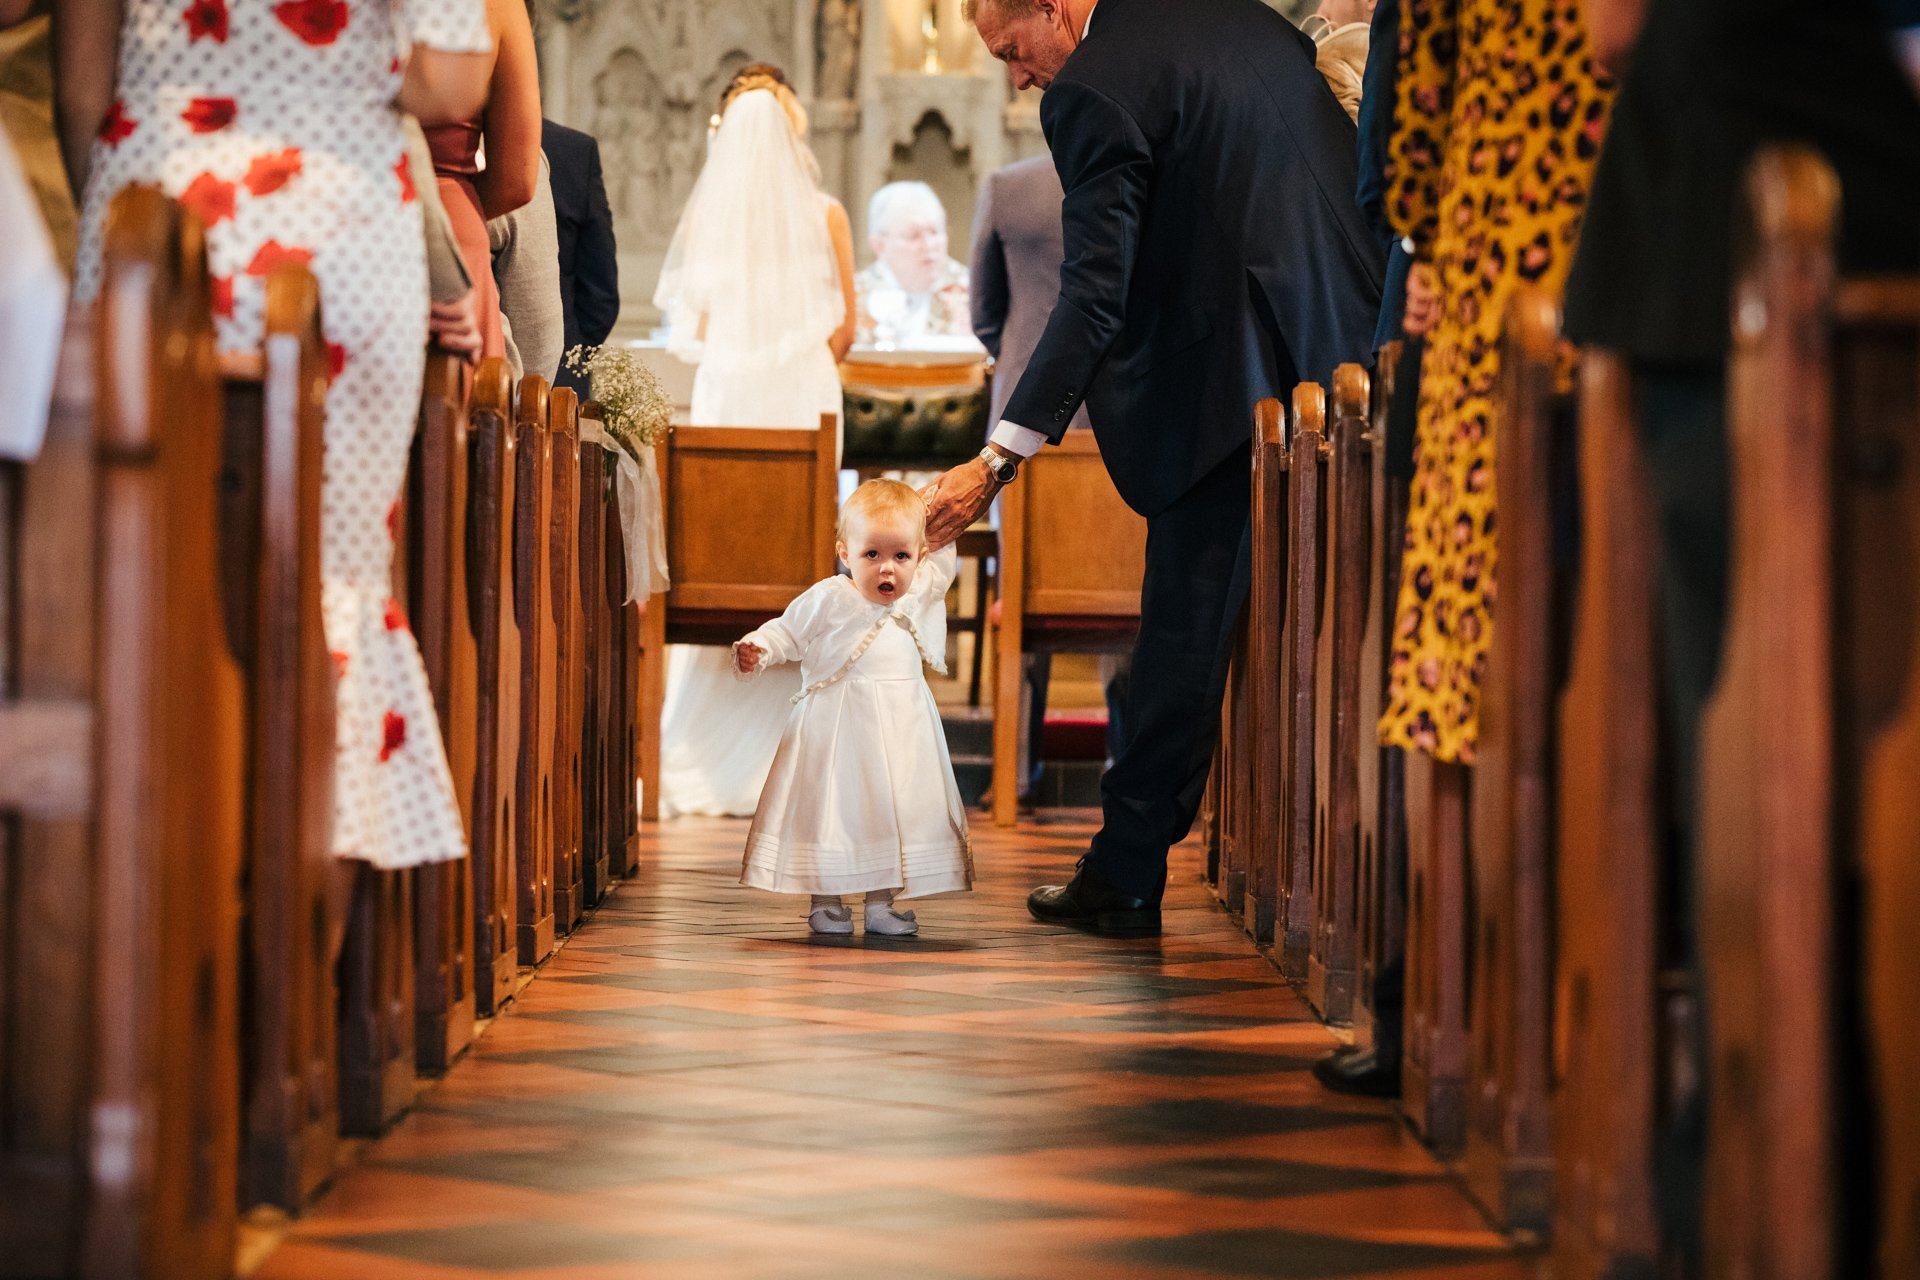 Young child tried to escape from he church int he middle of ceremony